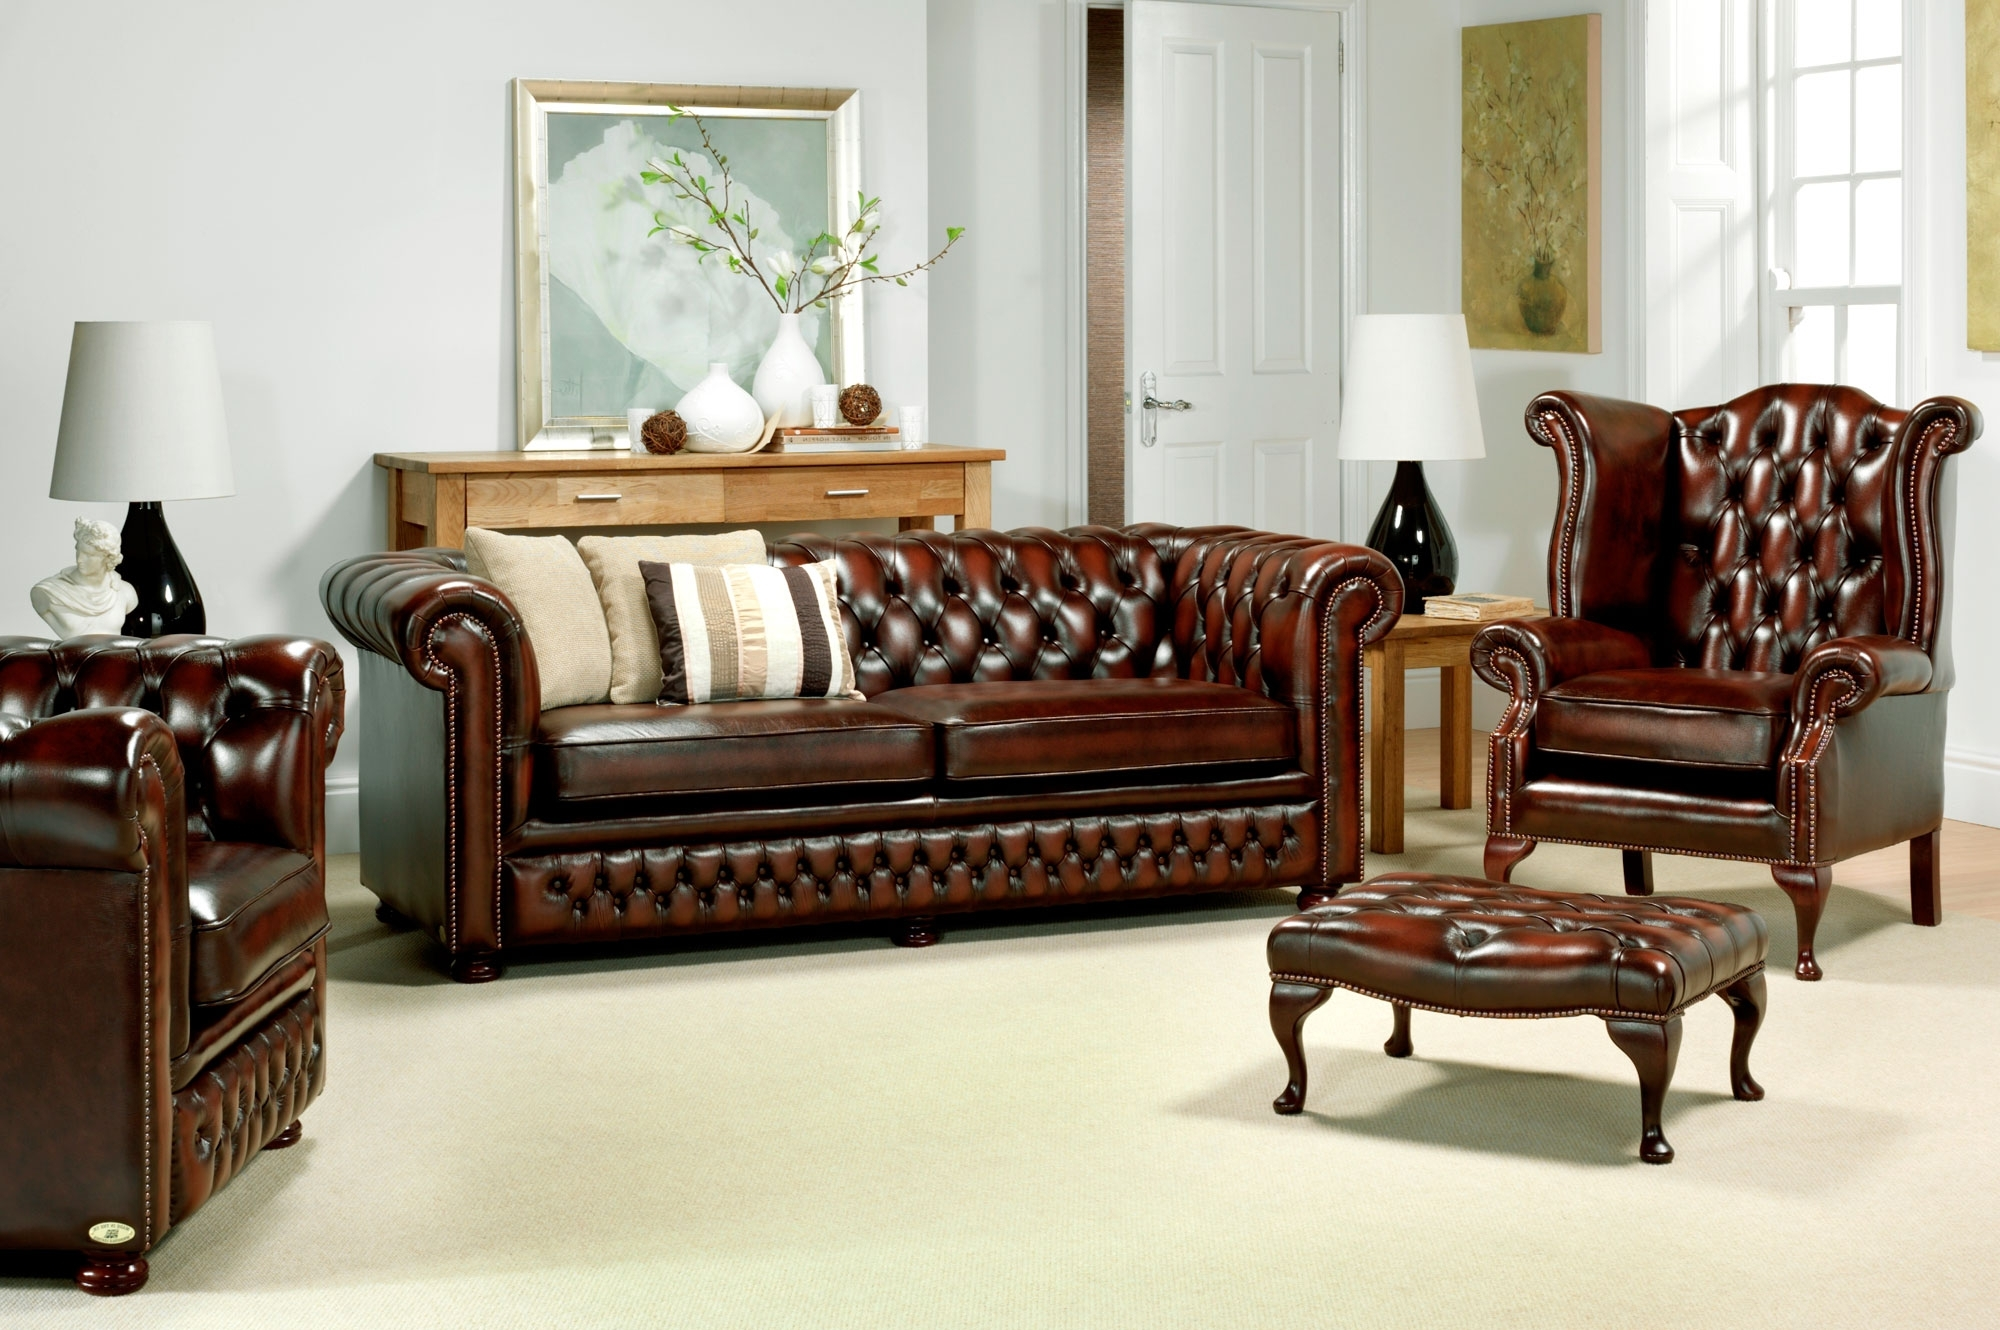 Chesterfield Sofa And Chair Top 20 Of Chesterfield Sofas And Chairs